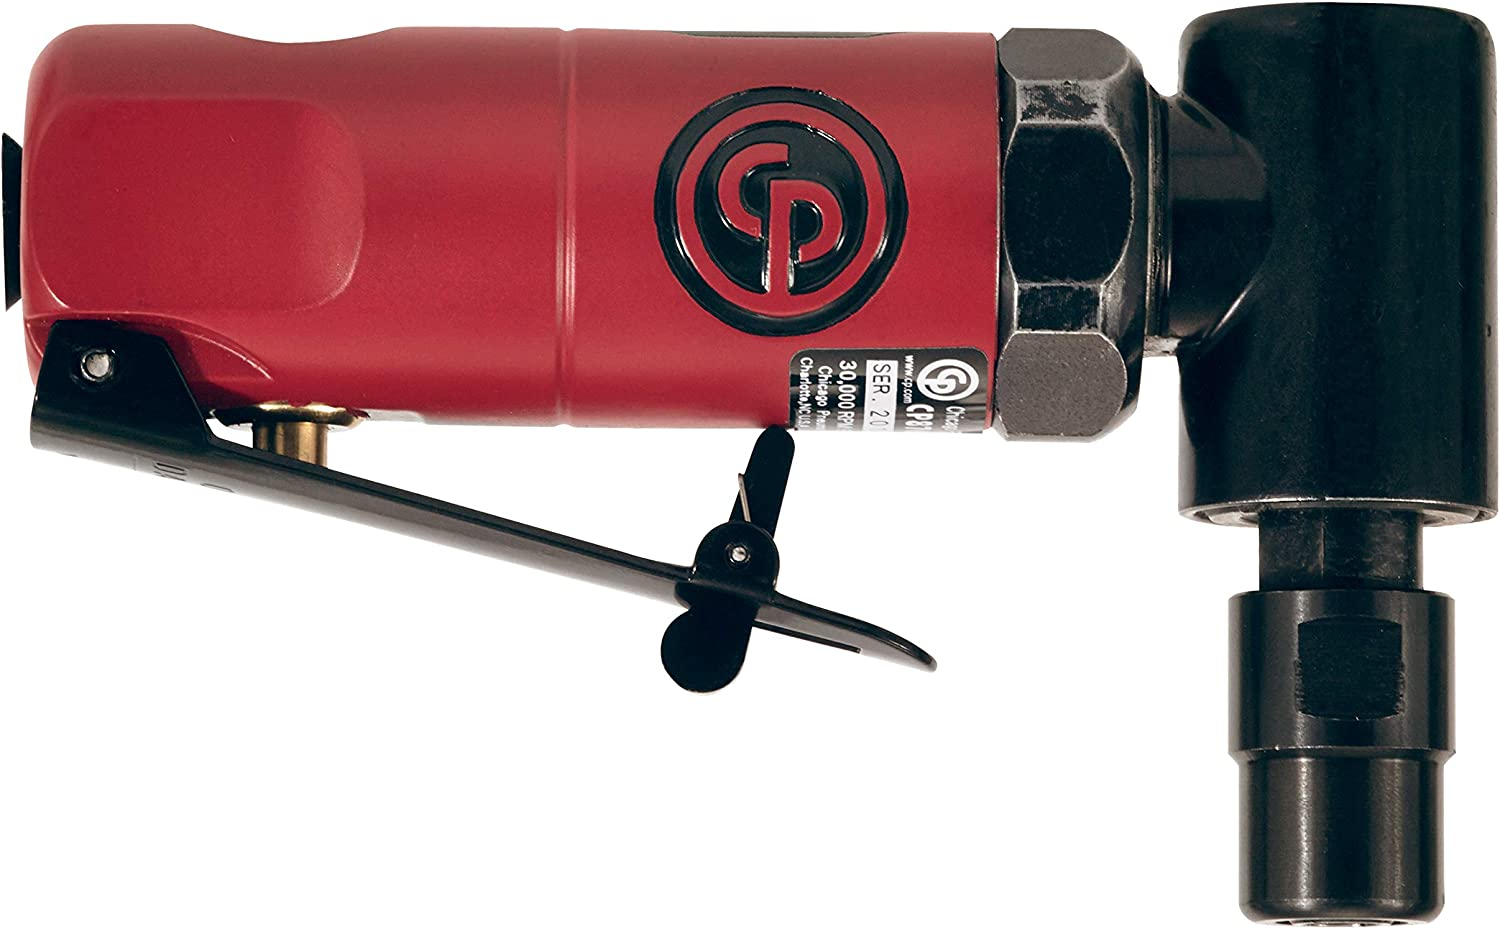 Chicago Pneumatic CP875 Pneumatic Right Angle Pistol Grip Die Grinder